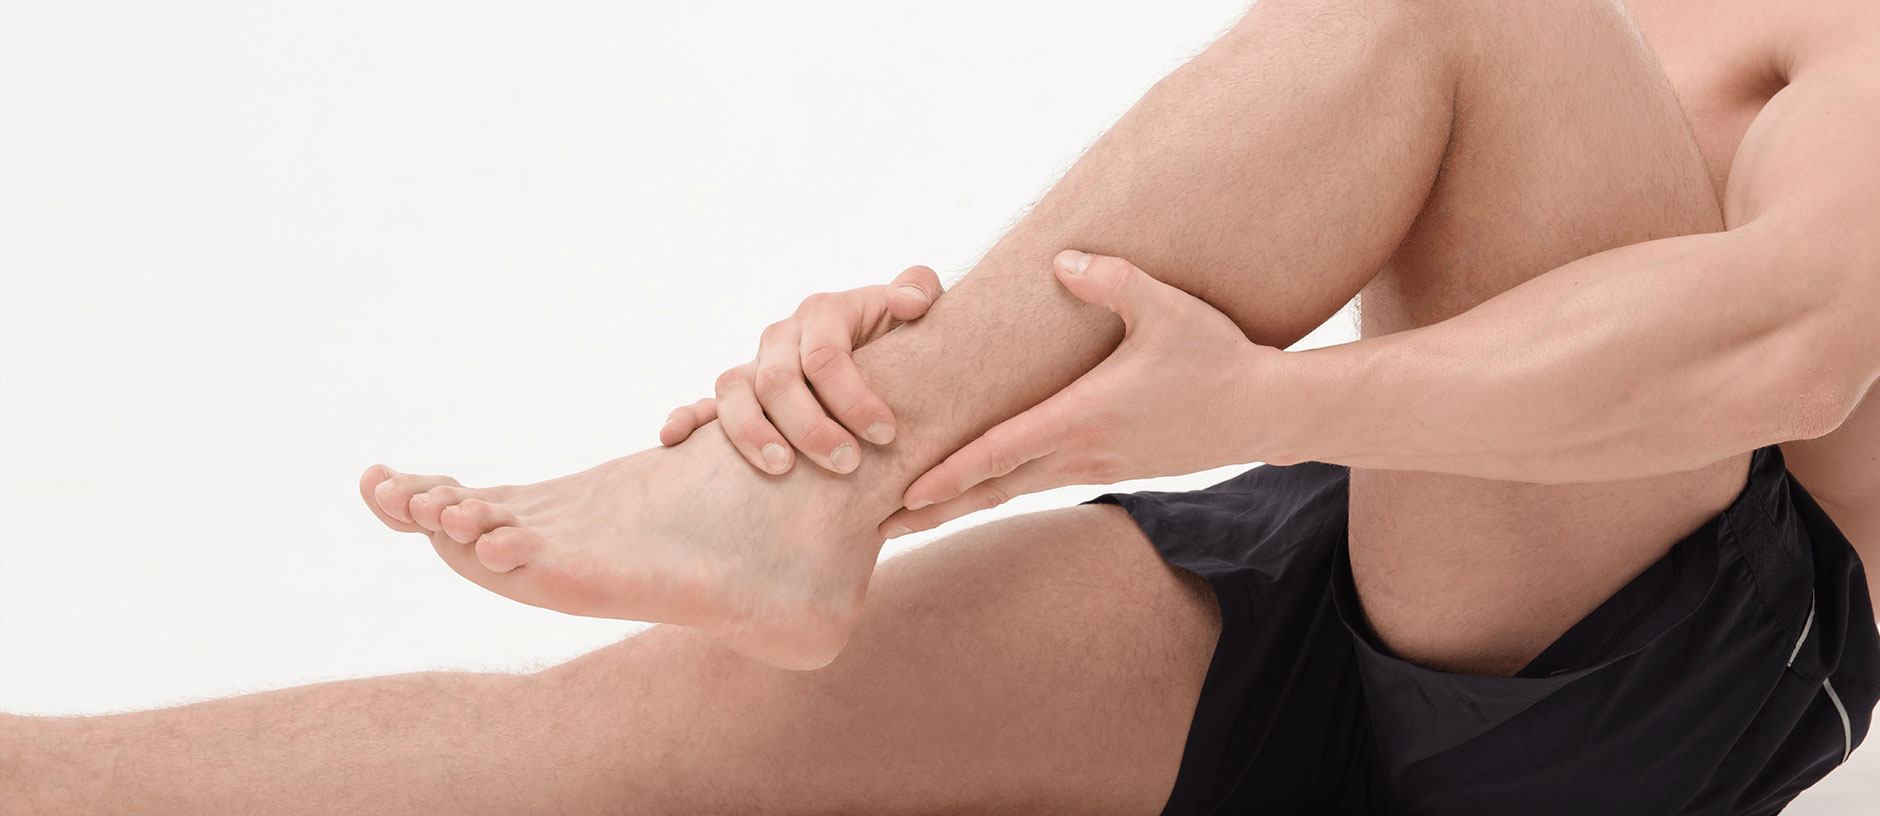 Stem Cell Therapies for Achilles Tendinitis